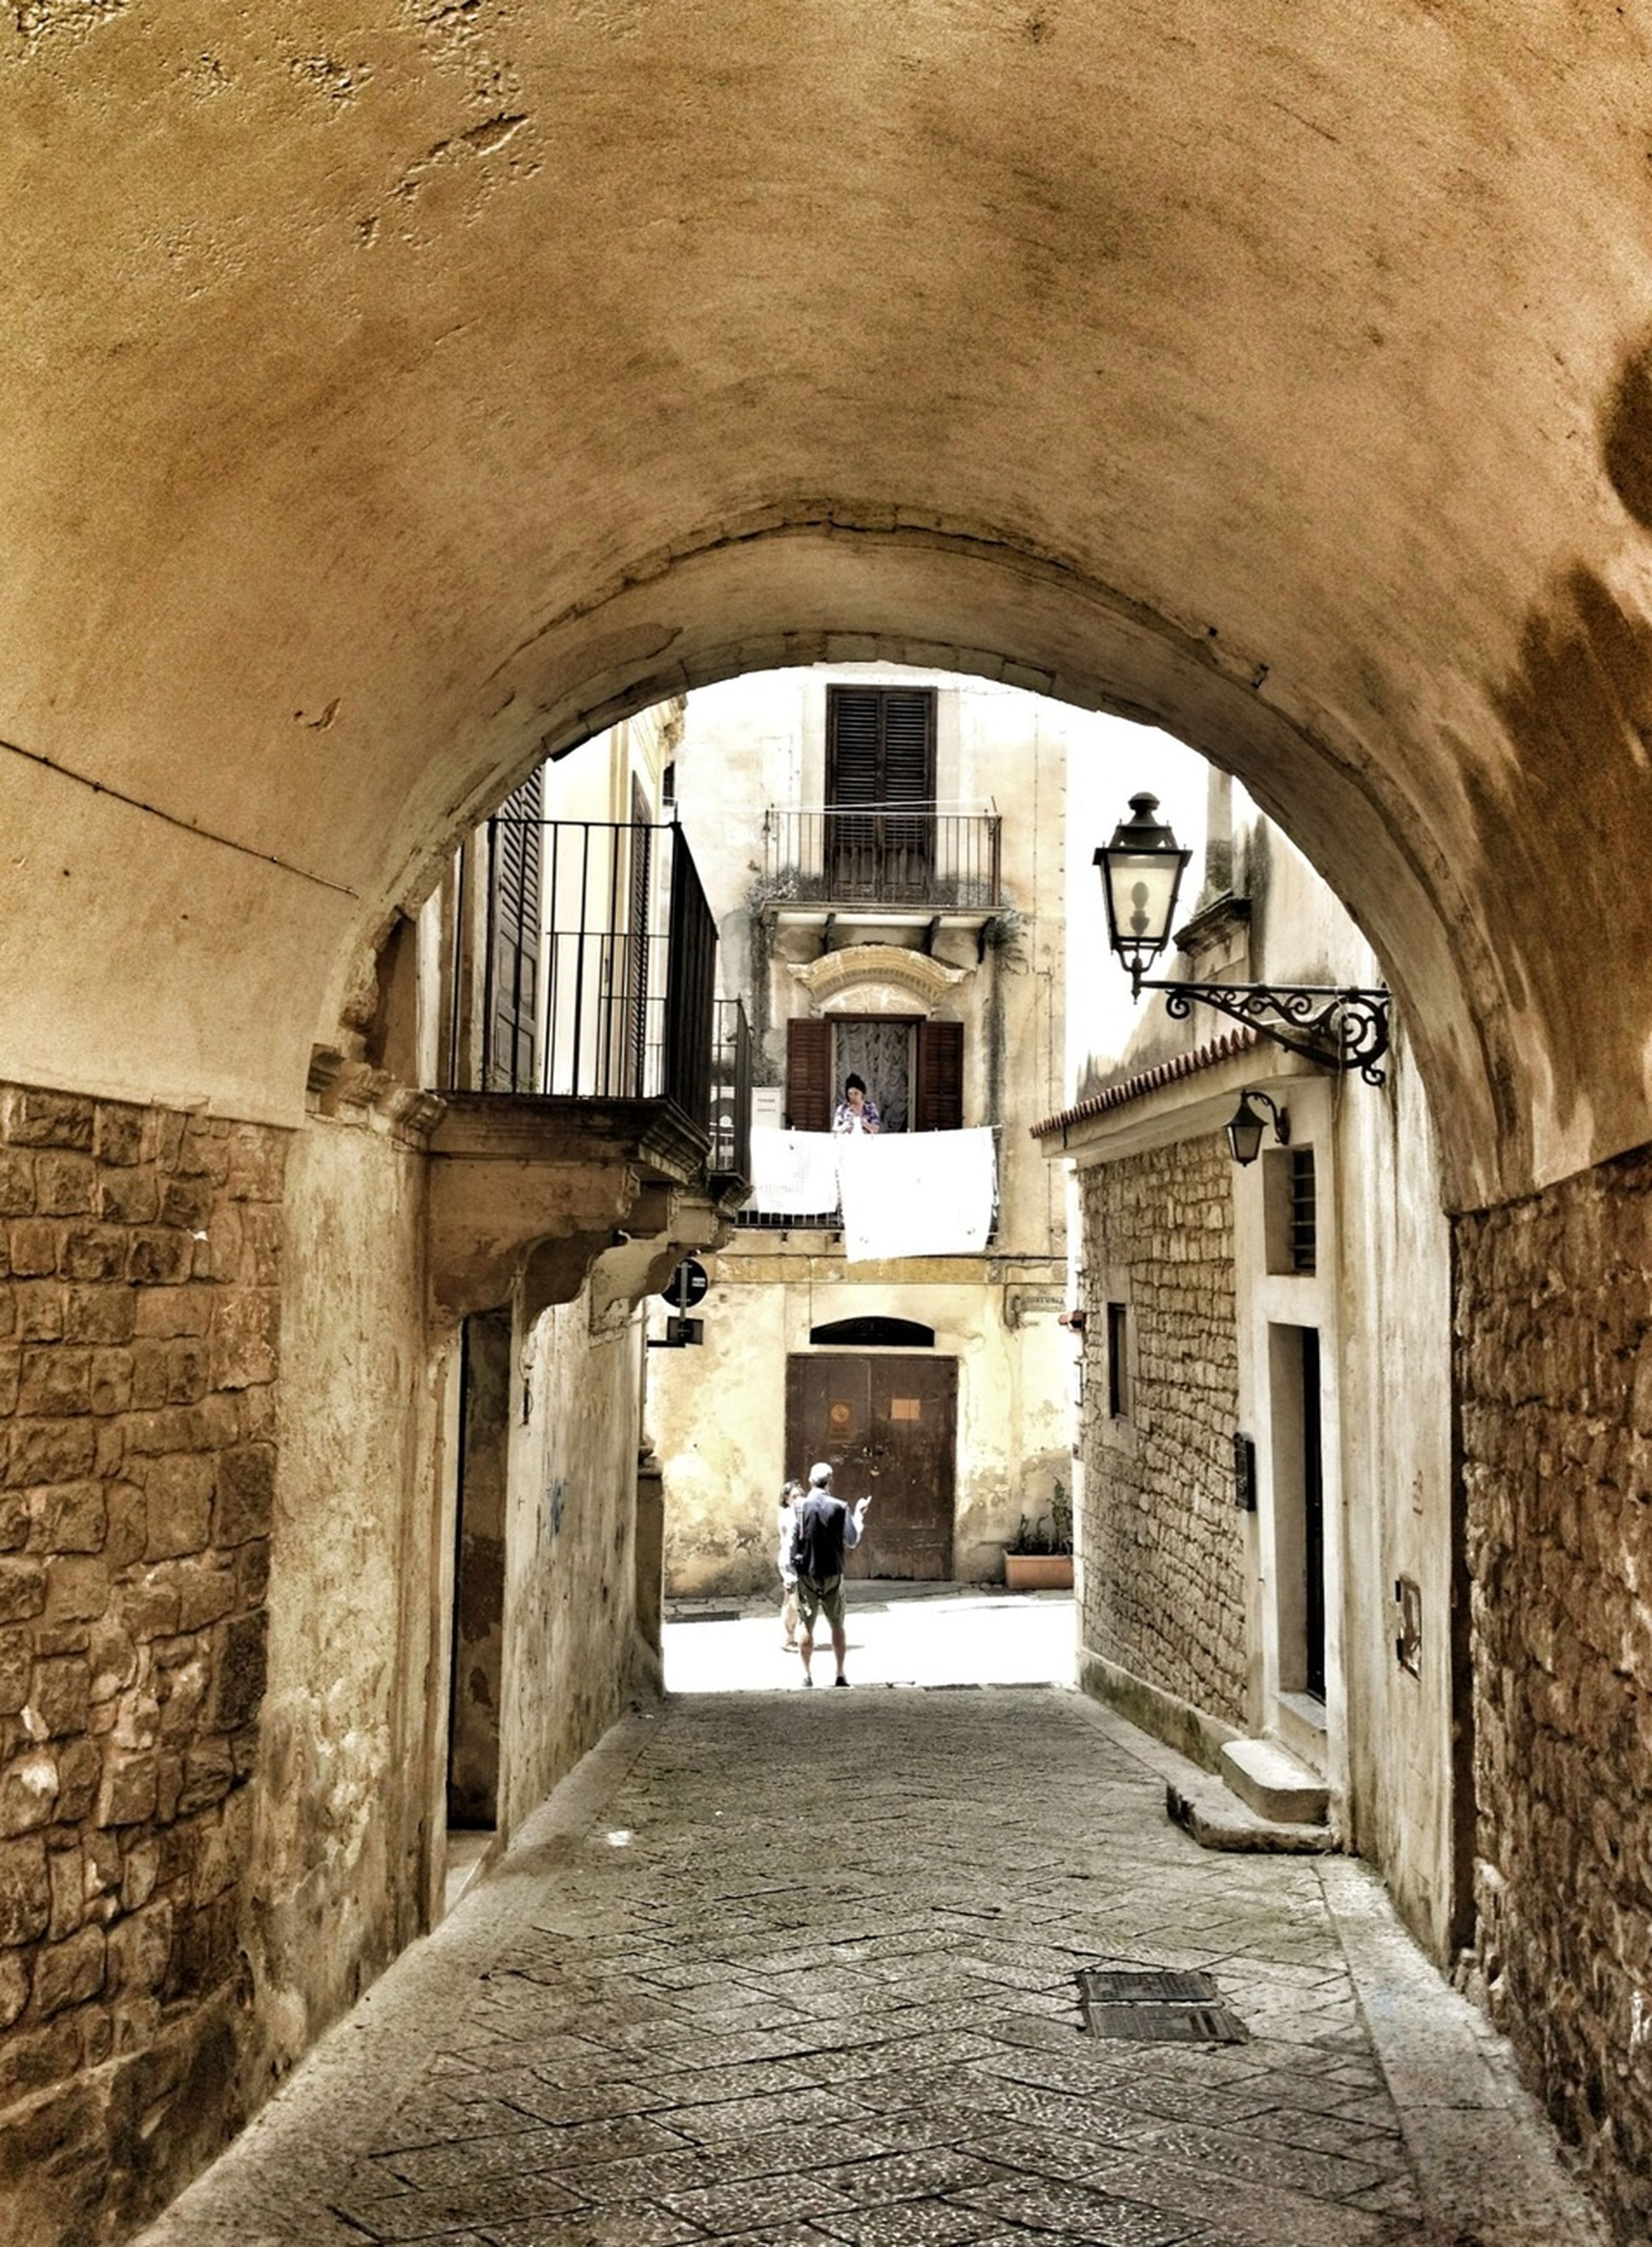 architecture, built structure, building exterior, arch, men, walking, building, the way forward, lifestyles, archway, tunnel, old, full length, cobblestone, residential building, indoors, street, abandoned